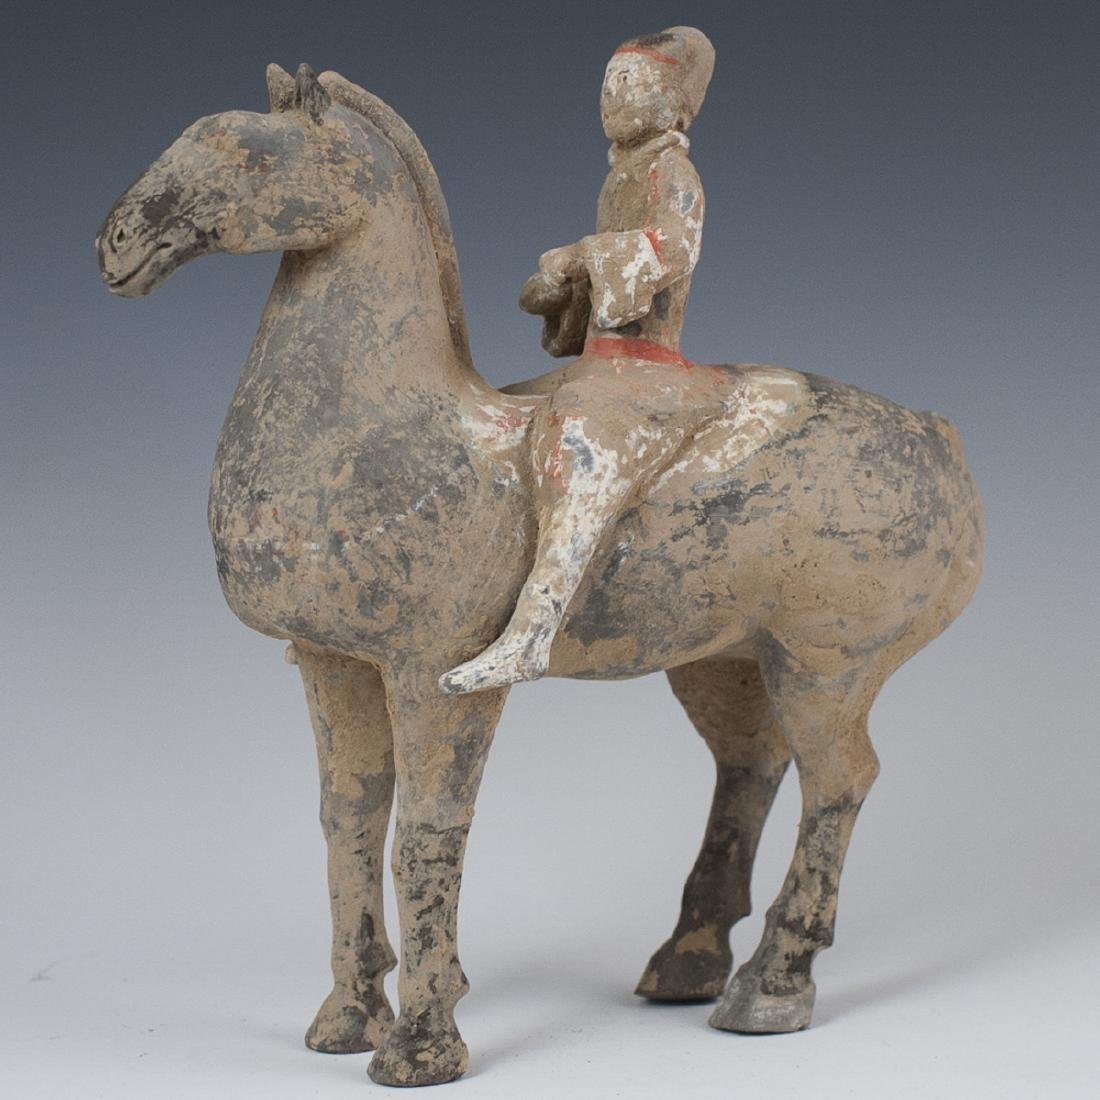 Chinese Han Dynasty Terracotta Horse & Rider